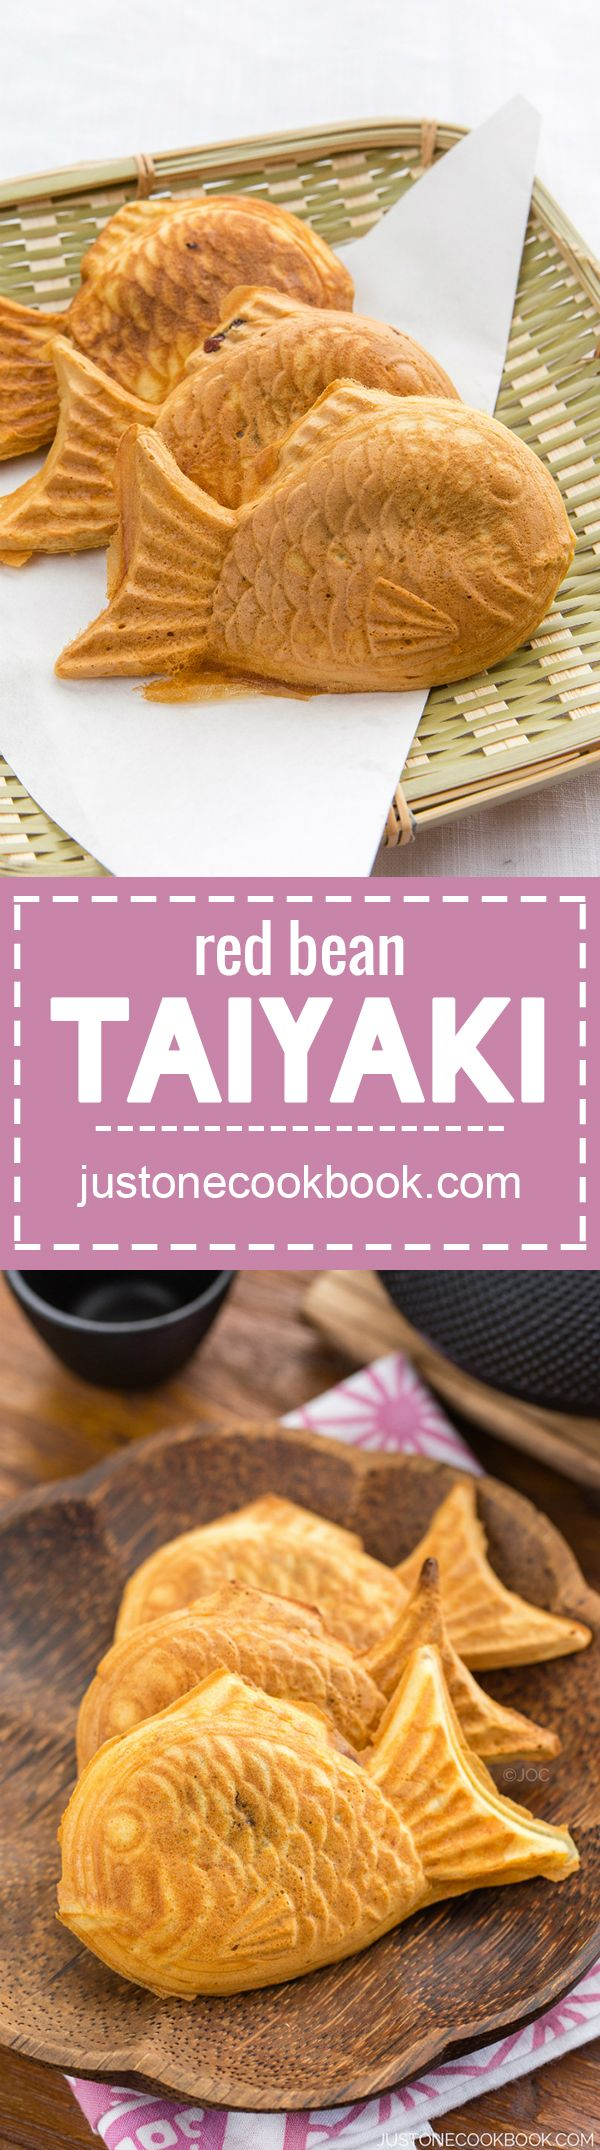 Taiyaki (鯛焼き) | Easy Japanese Recipes at JustOneCookbook.com